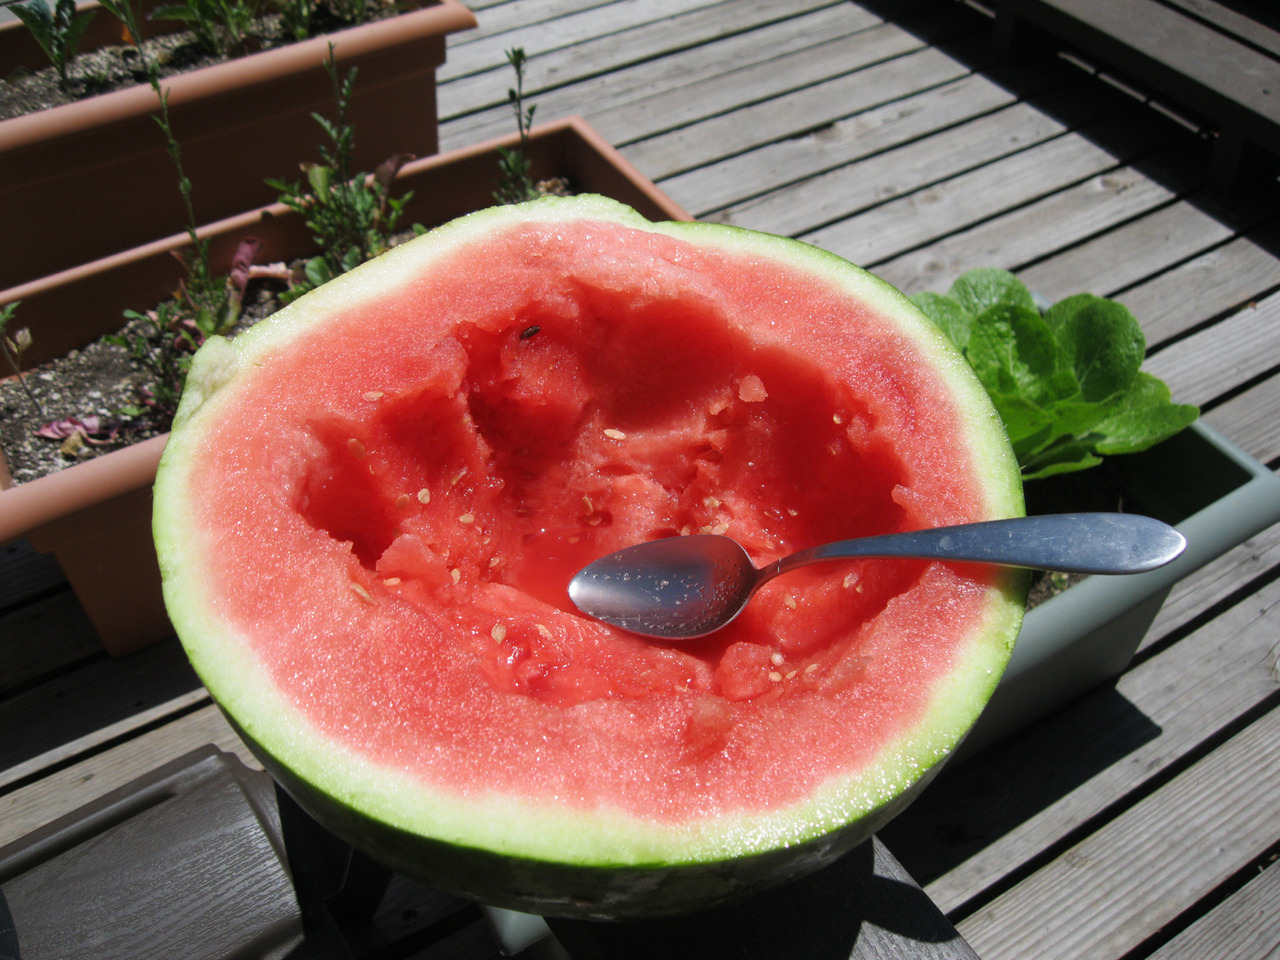 Eating melons in the sun is blissful.